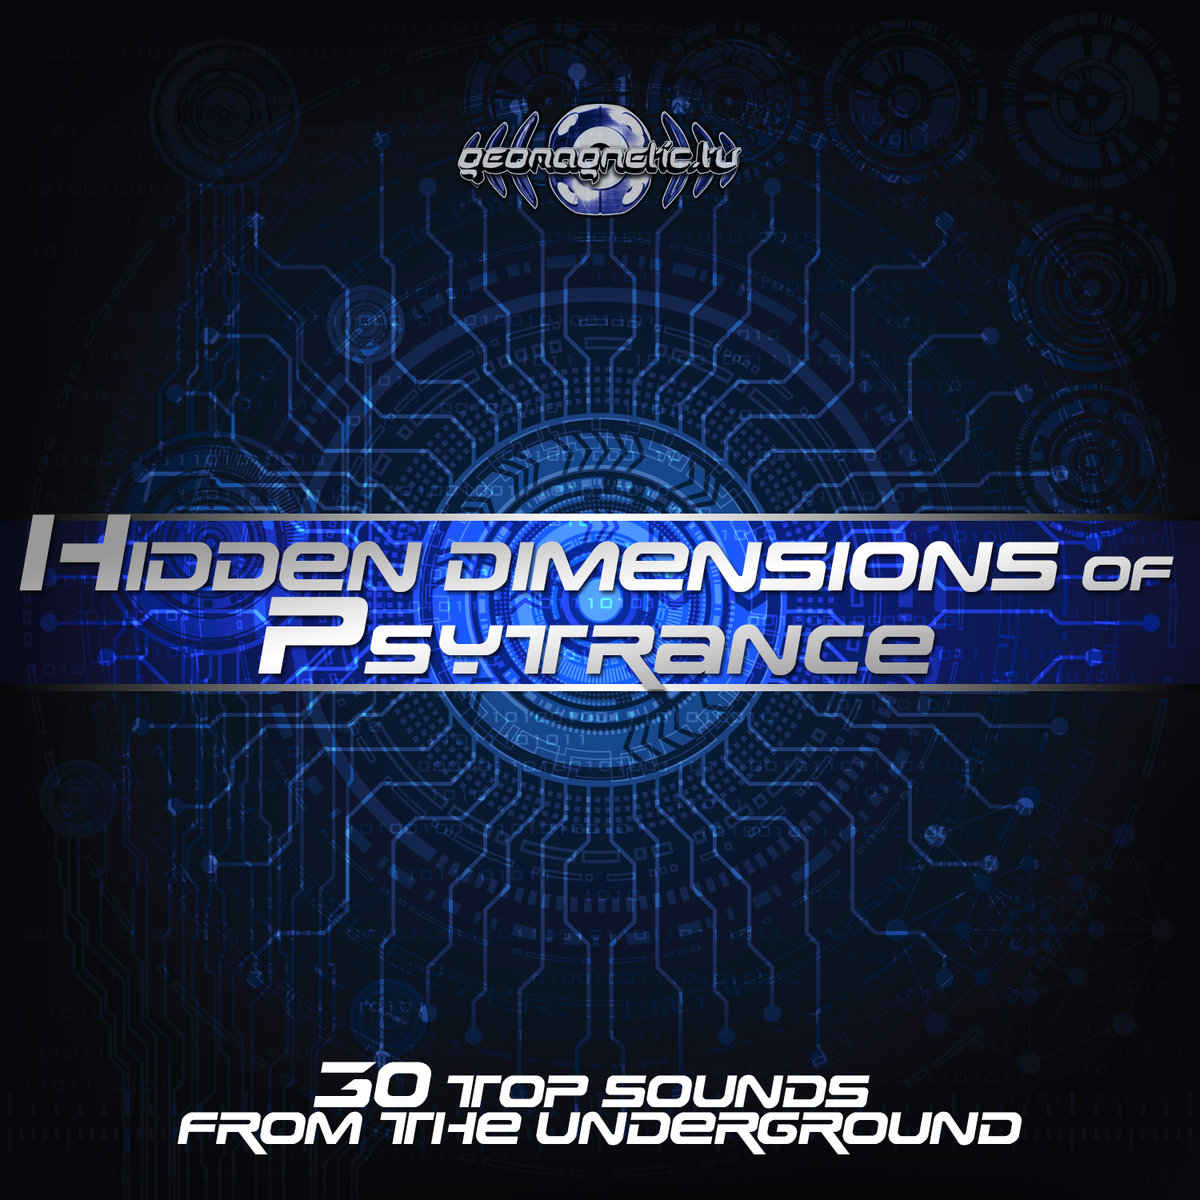 Barby - Sannyasin Commando @ 'Various Artists - Hidden Dimensions of Psytrance (30 Top Sounds From The Underground)' album (electronic, goa)